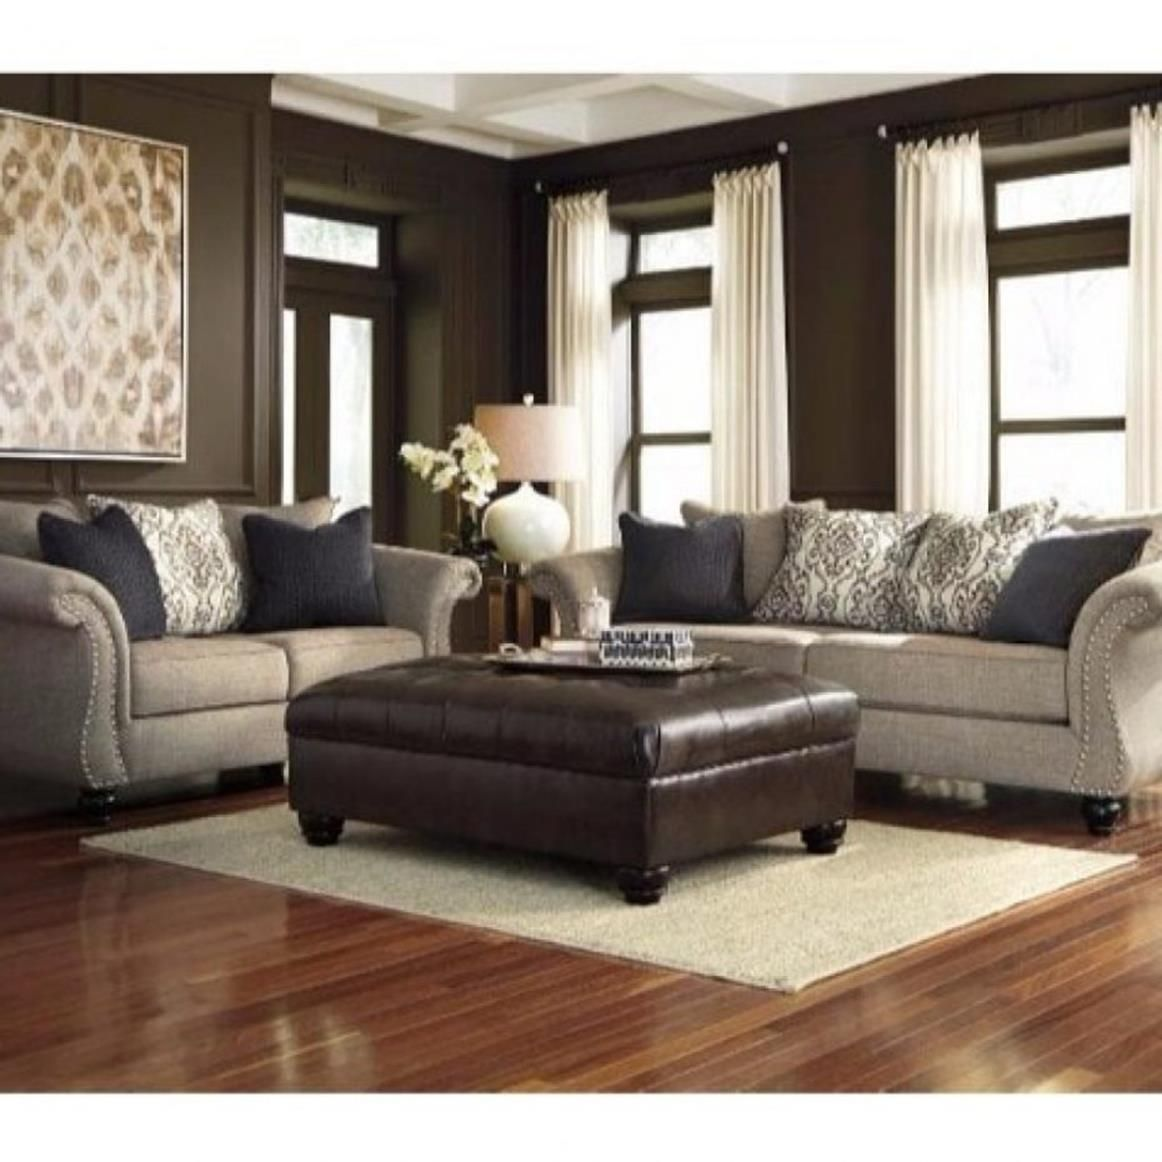 Best 30 Inexpensive Ikea Living Room Furniture Sets Ideas Its Home